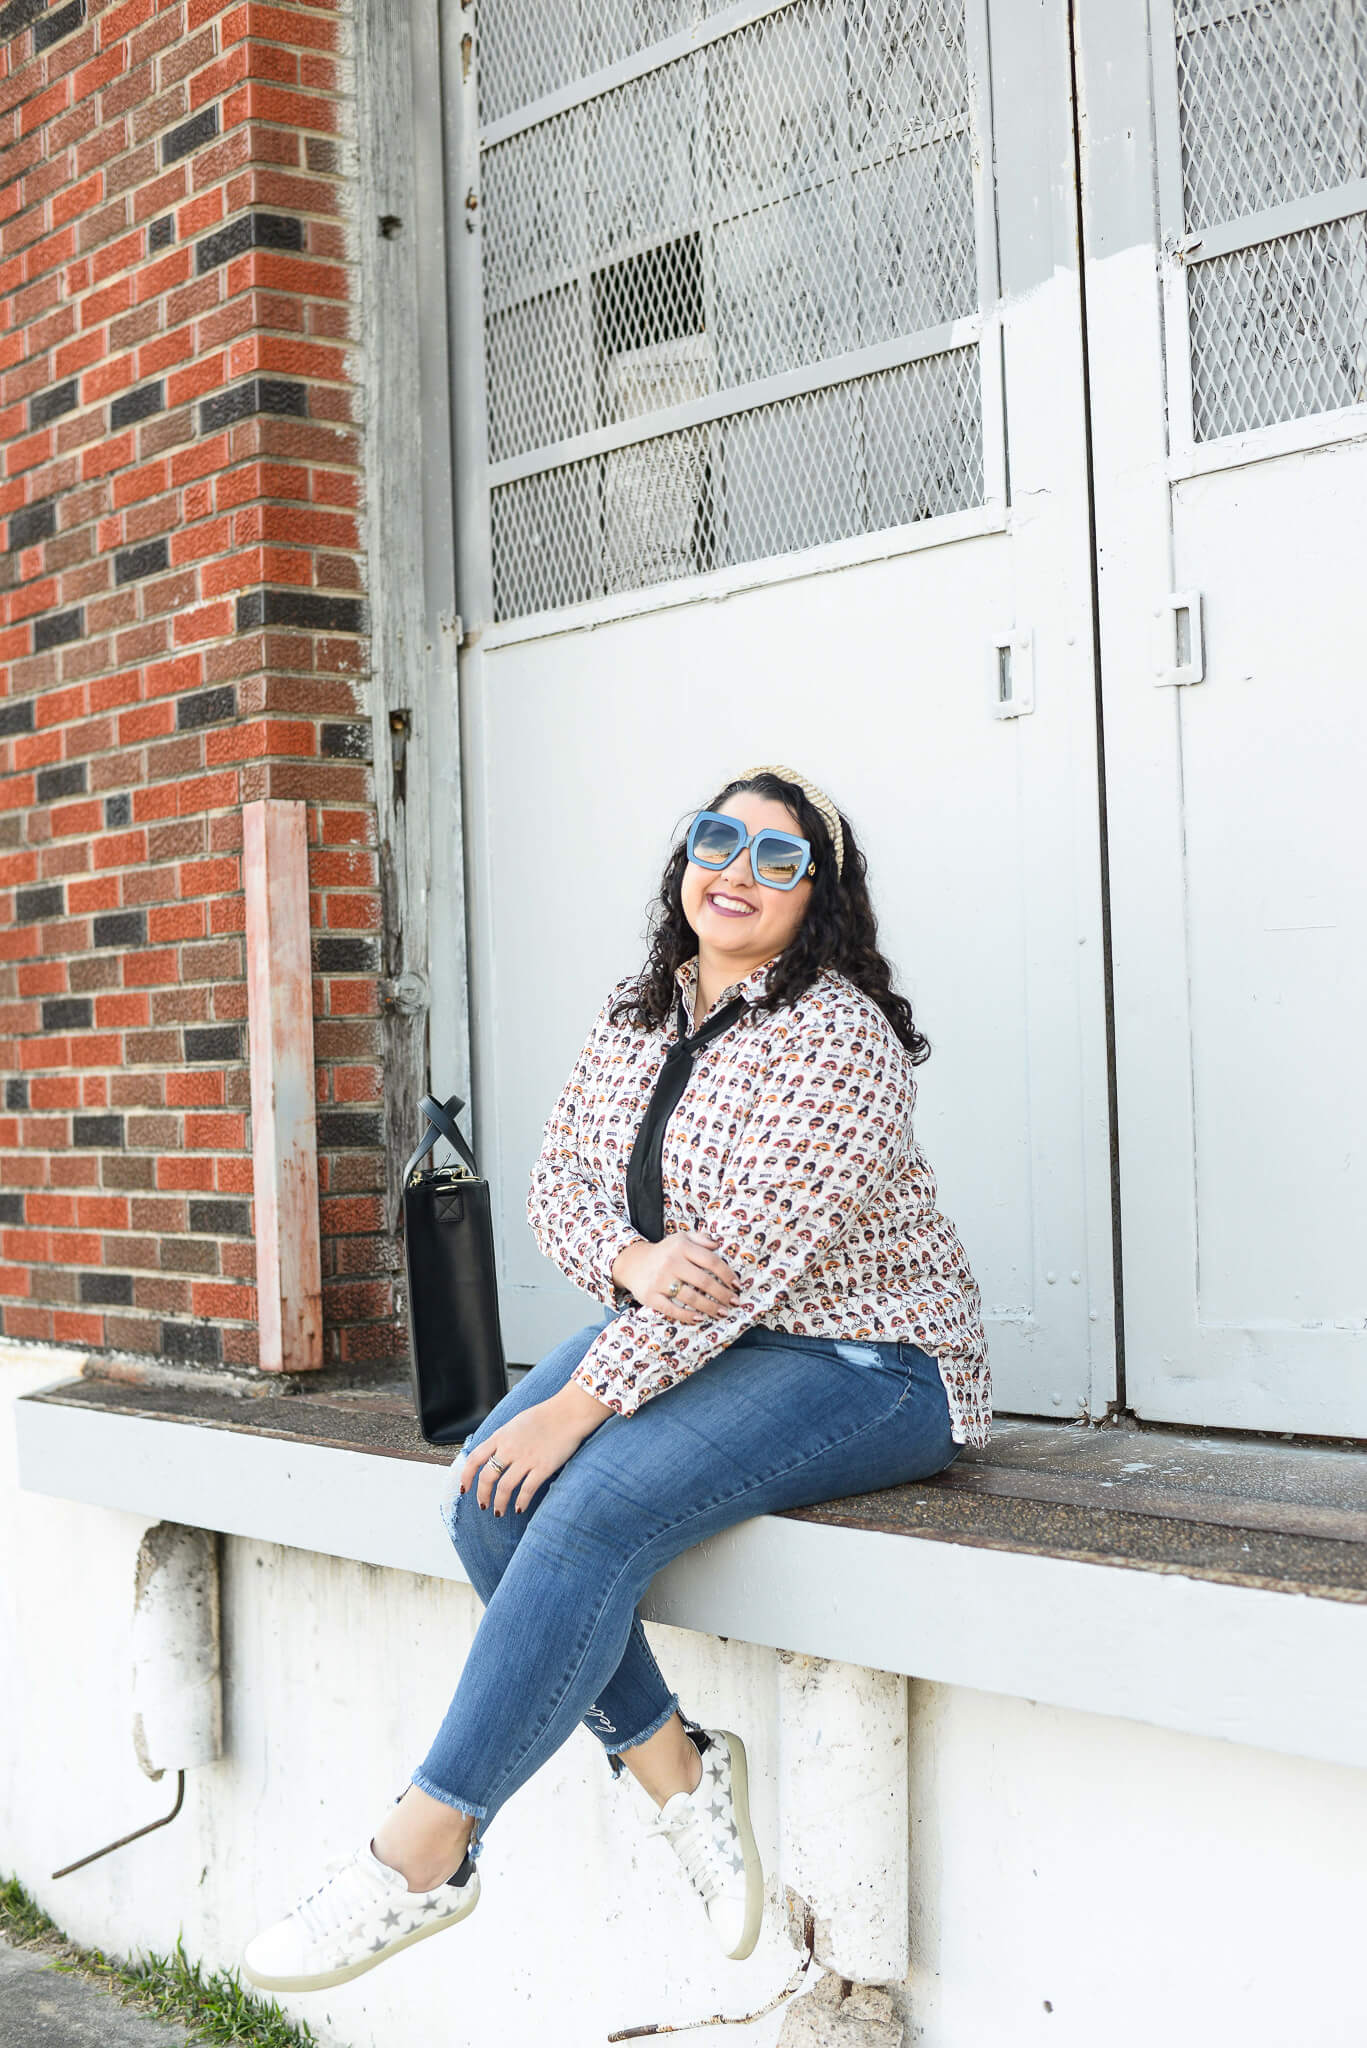 Jeans and bow tie blouse make for the perfect plus size weekend look